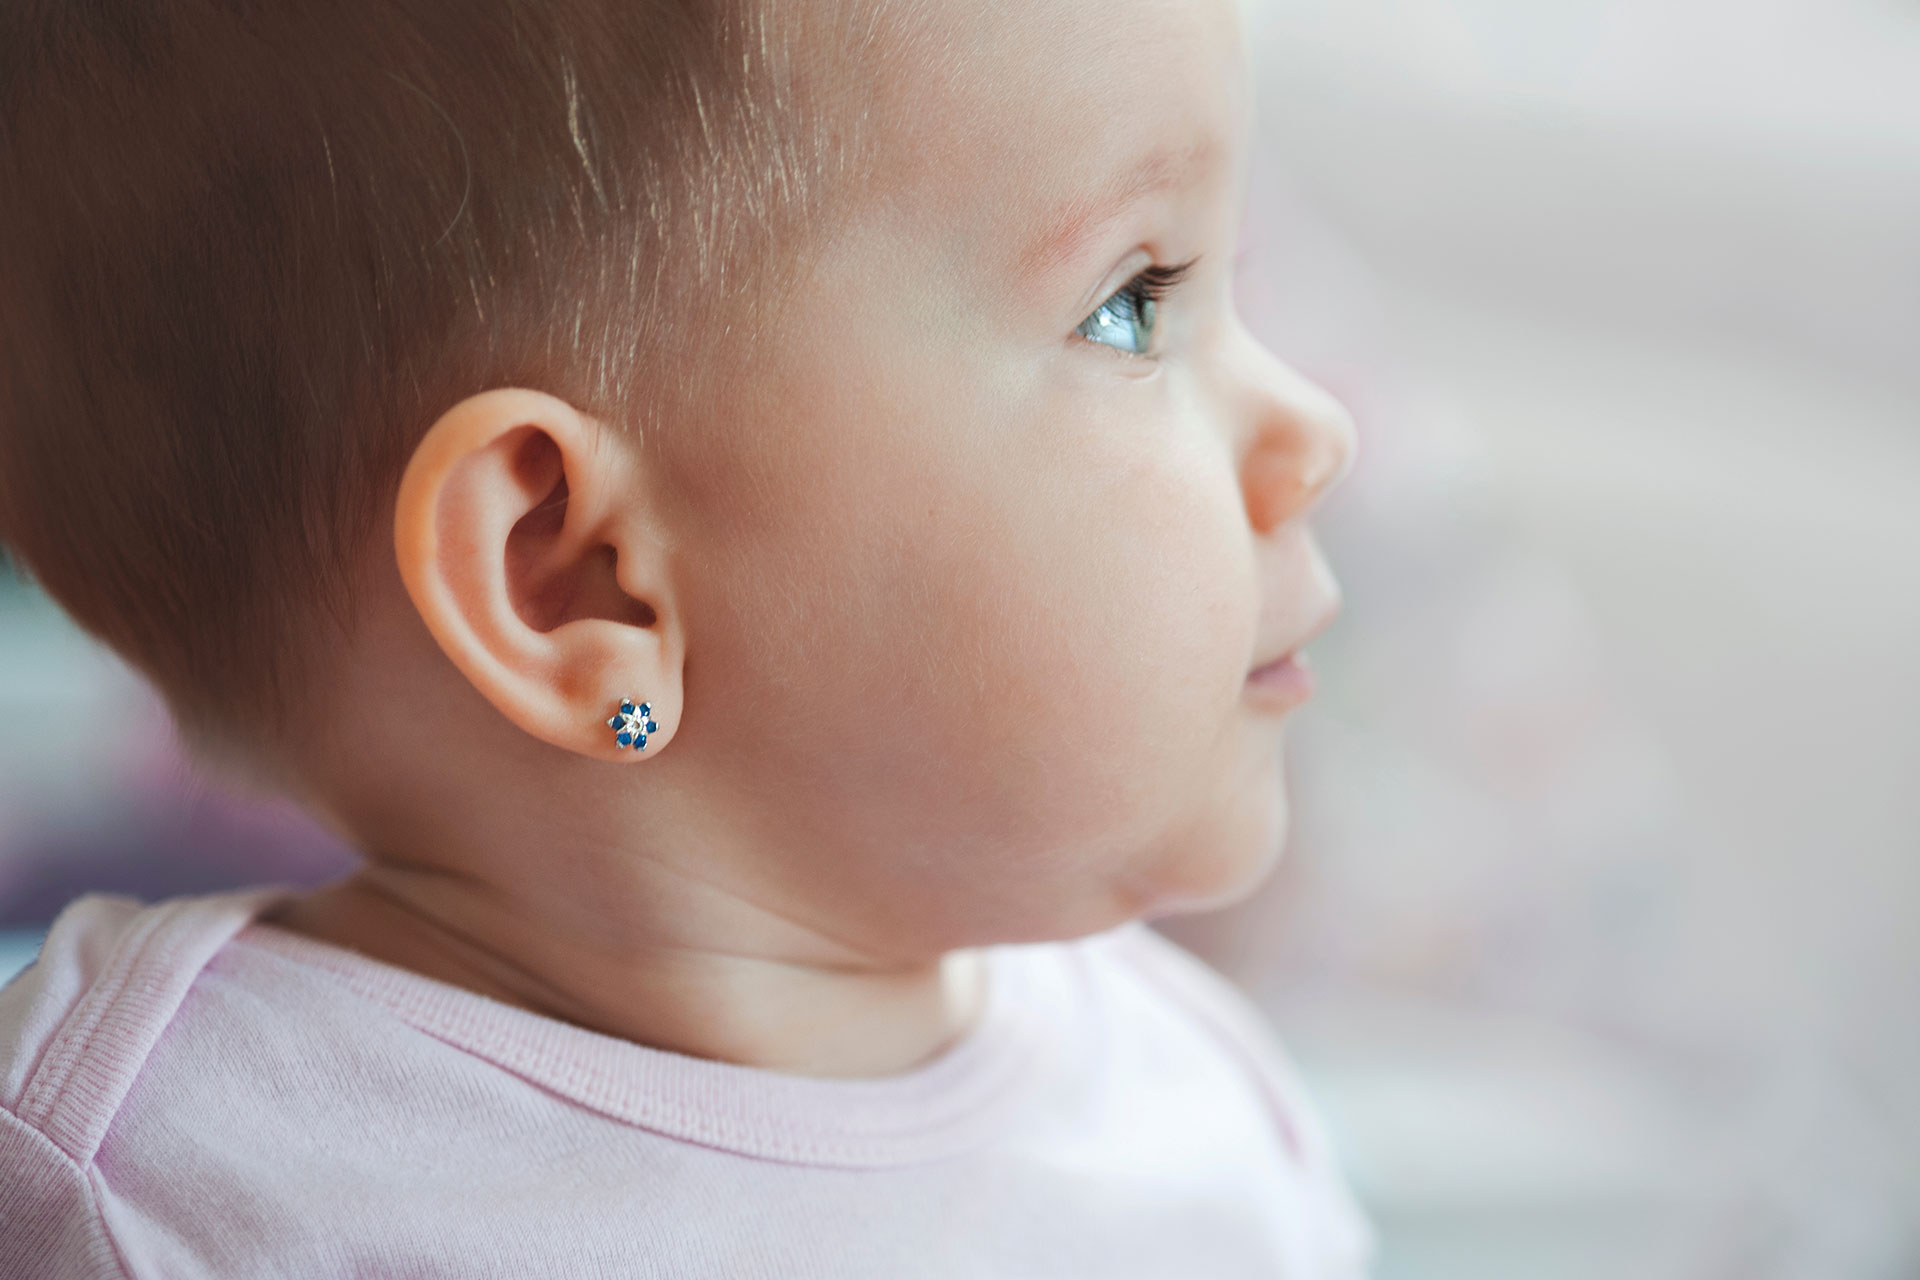 Baby Wearing Earrings; Courtesy of ditifoto/Shutterstock.com